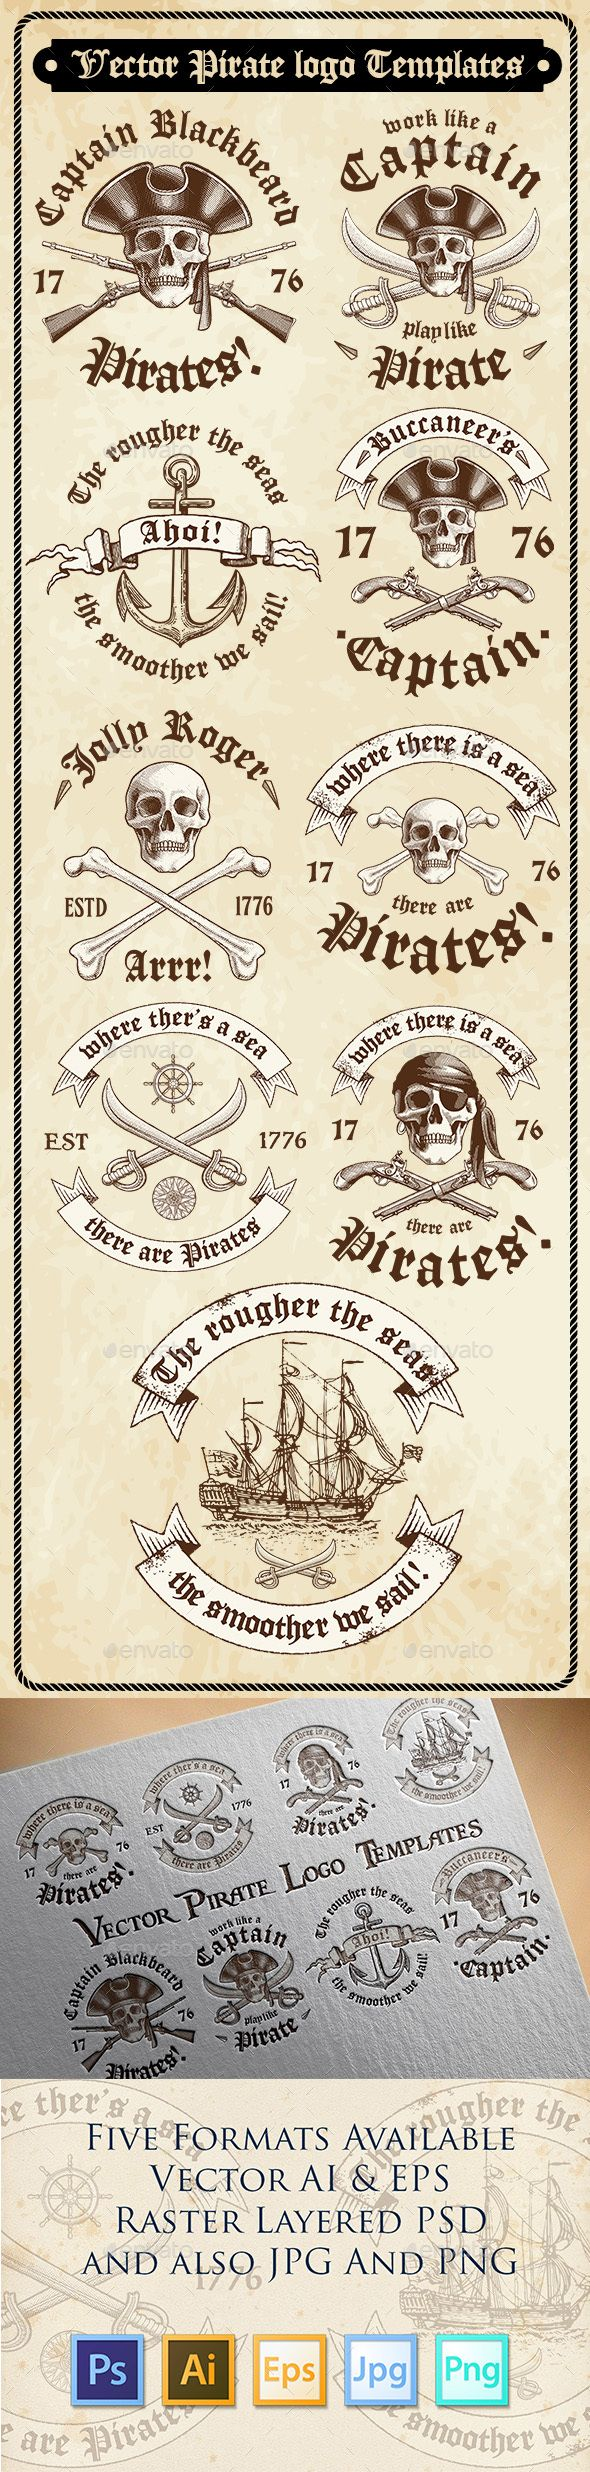 Vector Pirate Logo Templates PSD, Transparent PNG, Vector EPS, AI Illustrator